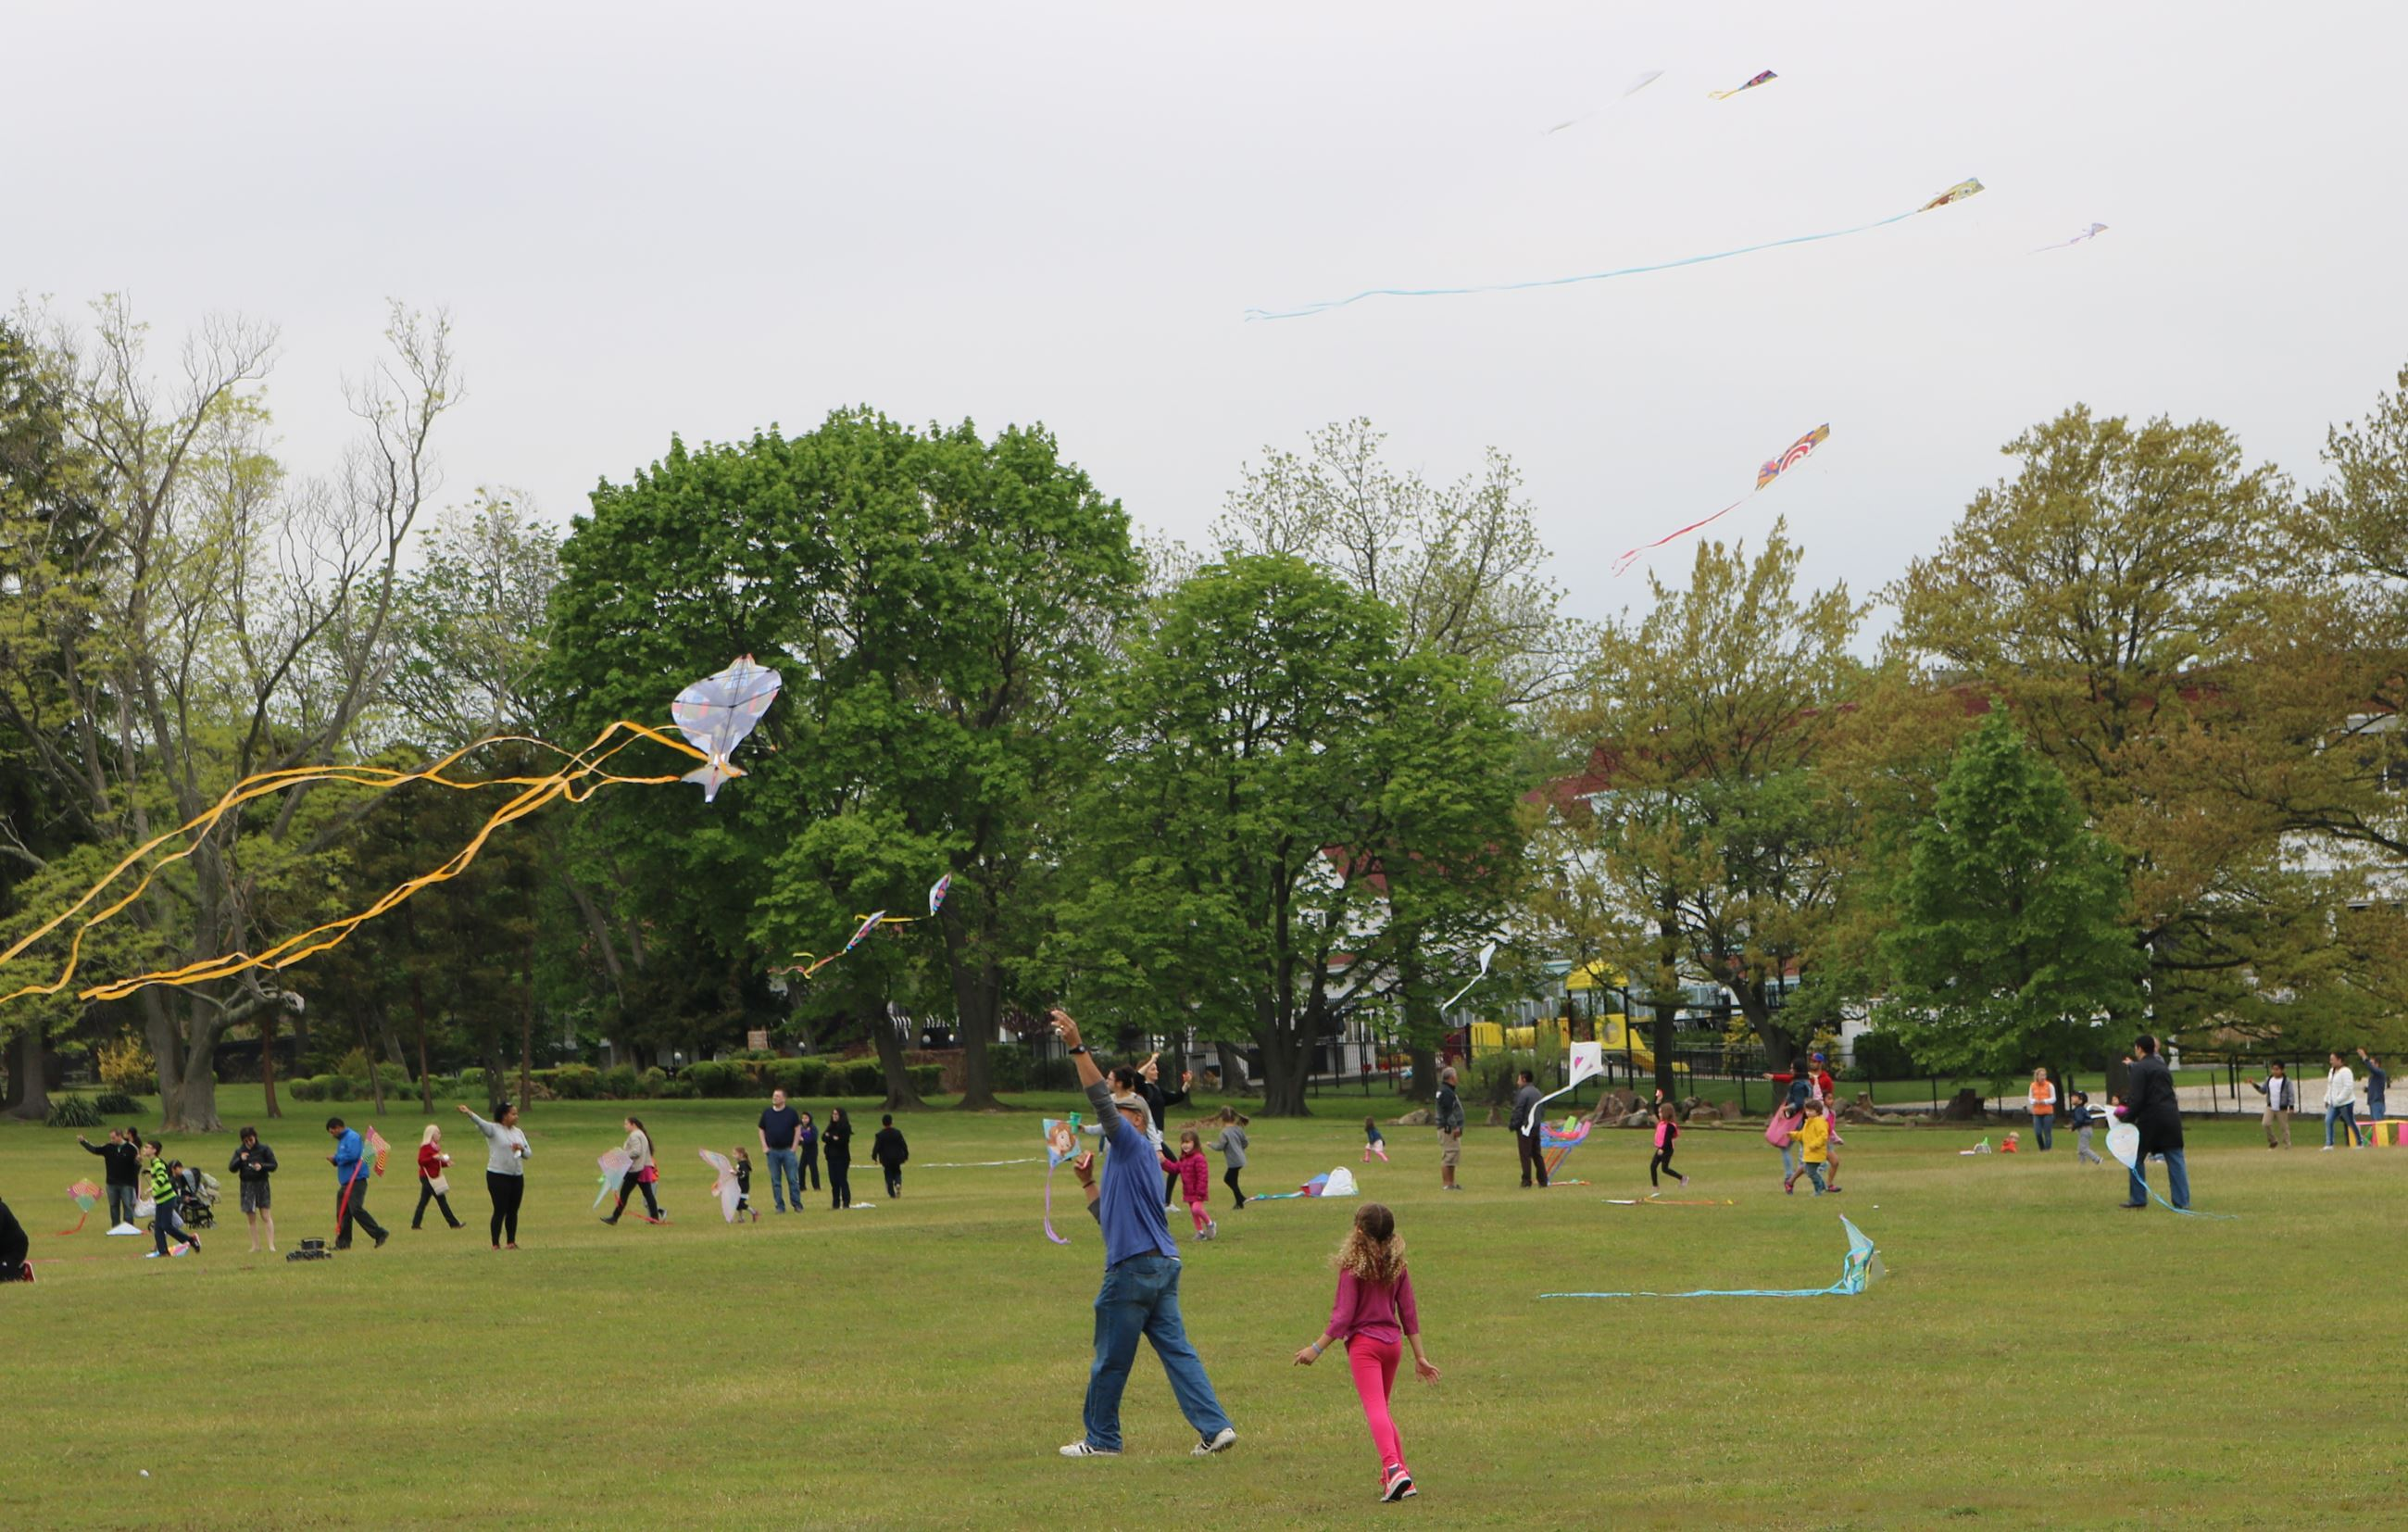 4th Annual Kite Day